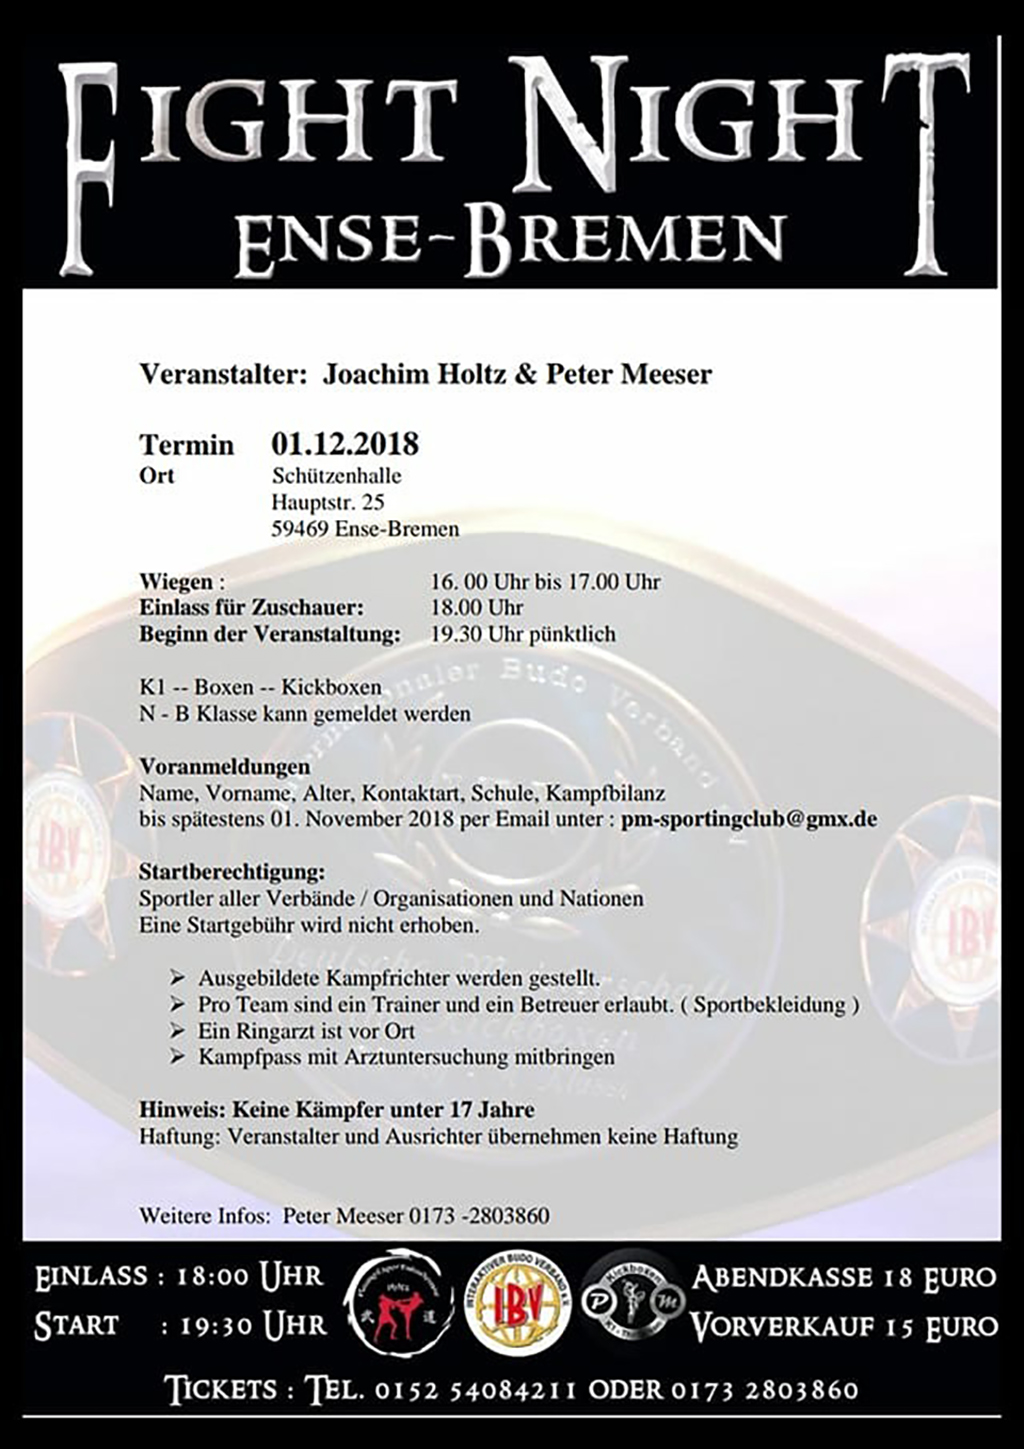 Fight-Night-Ense-Bremen-1-12-2018 (2)